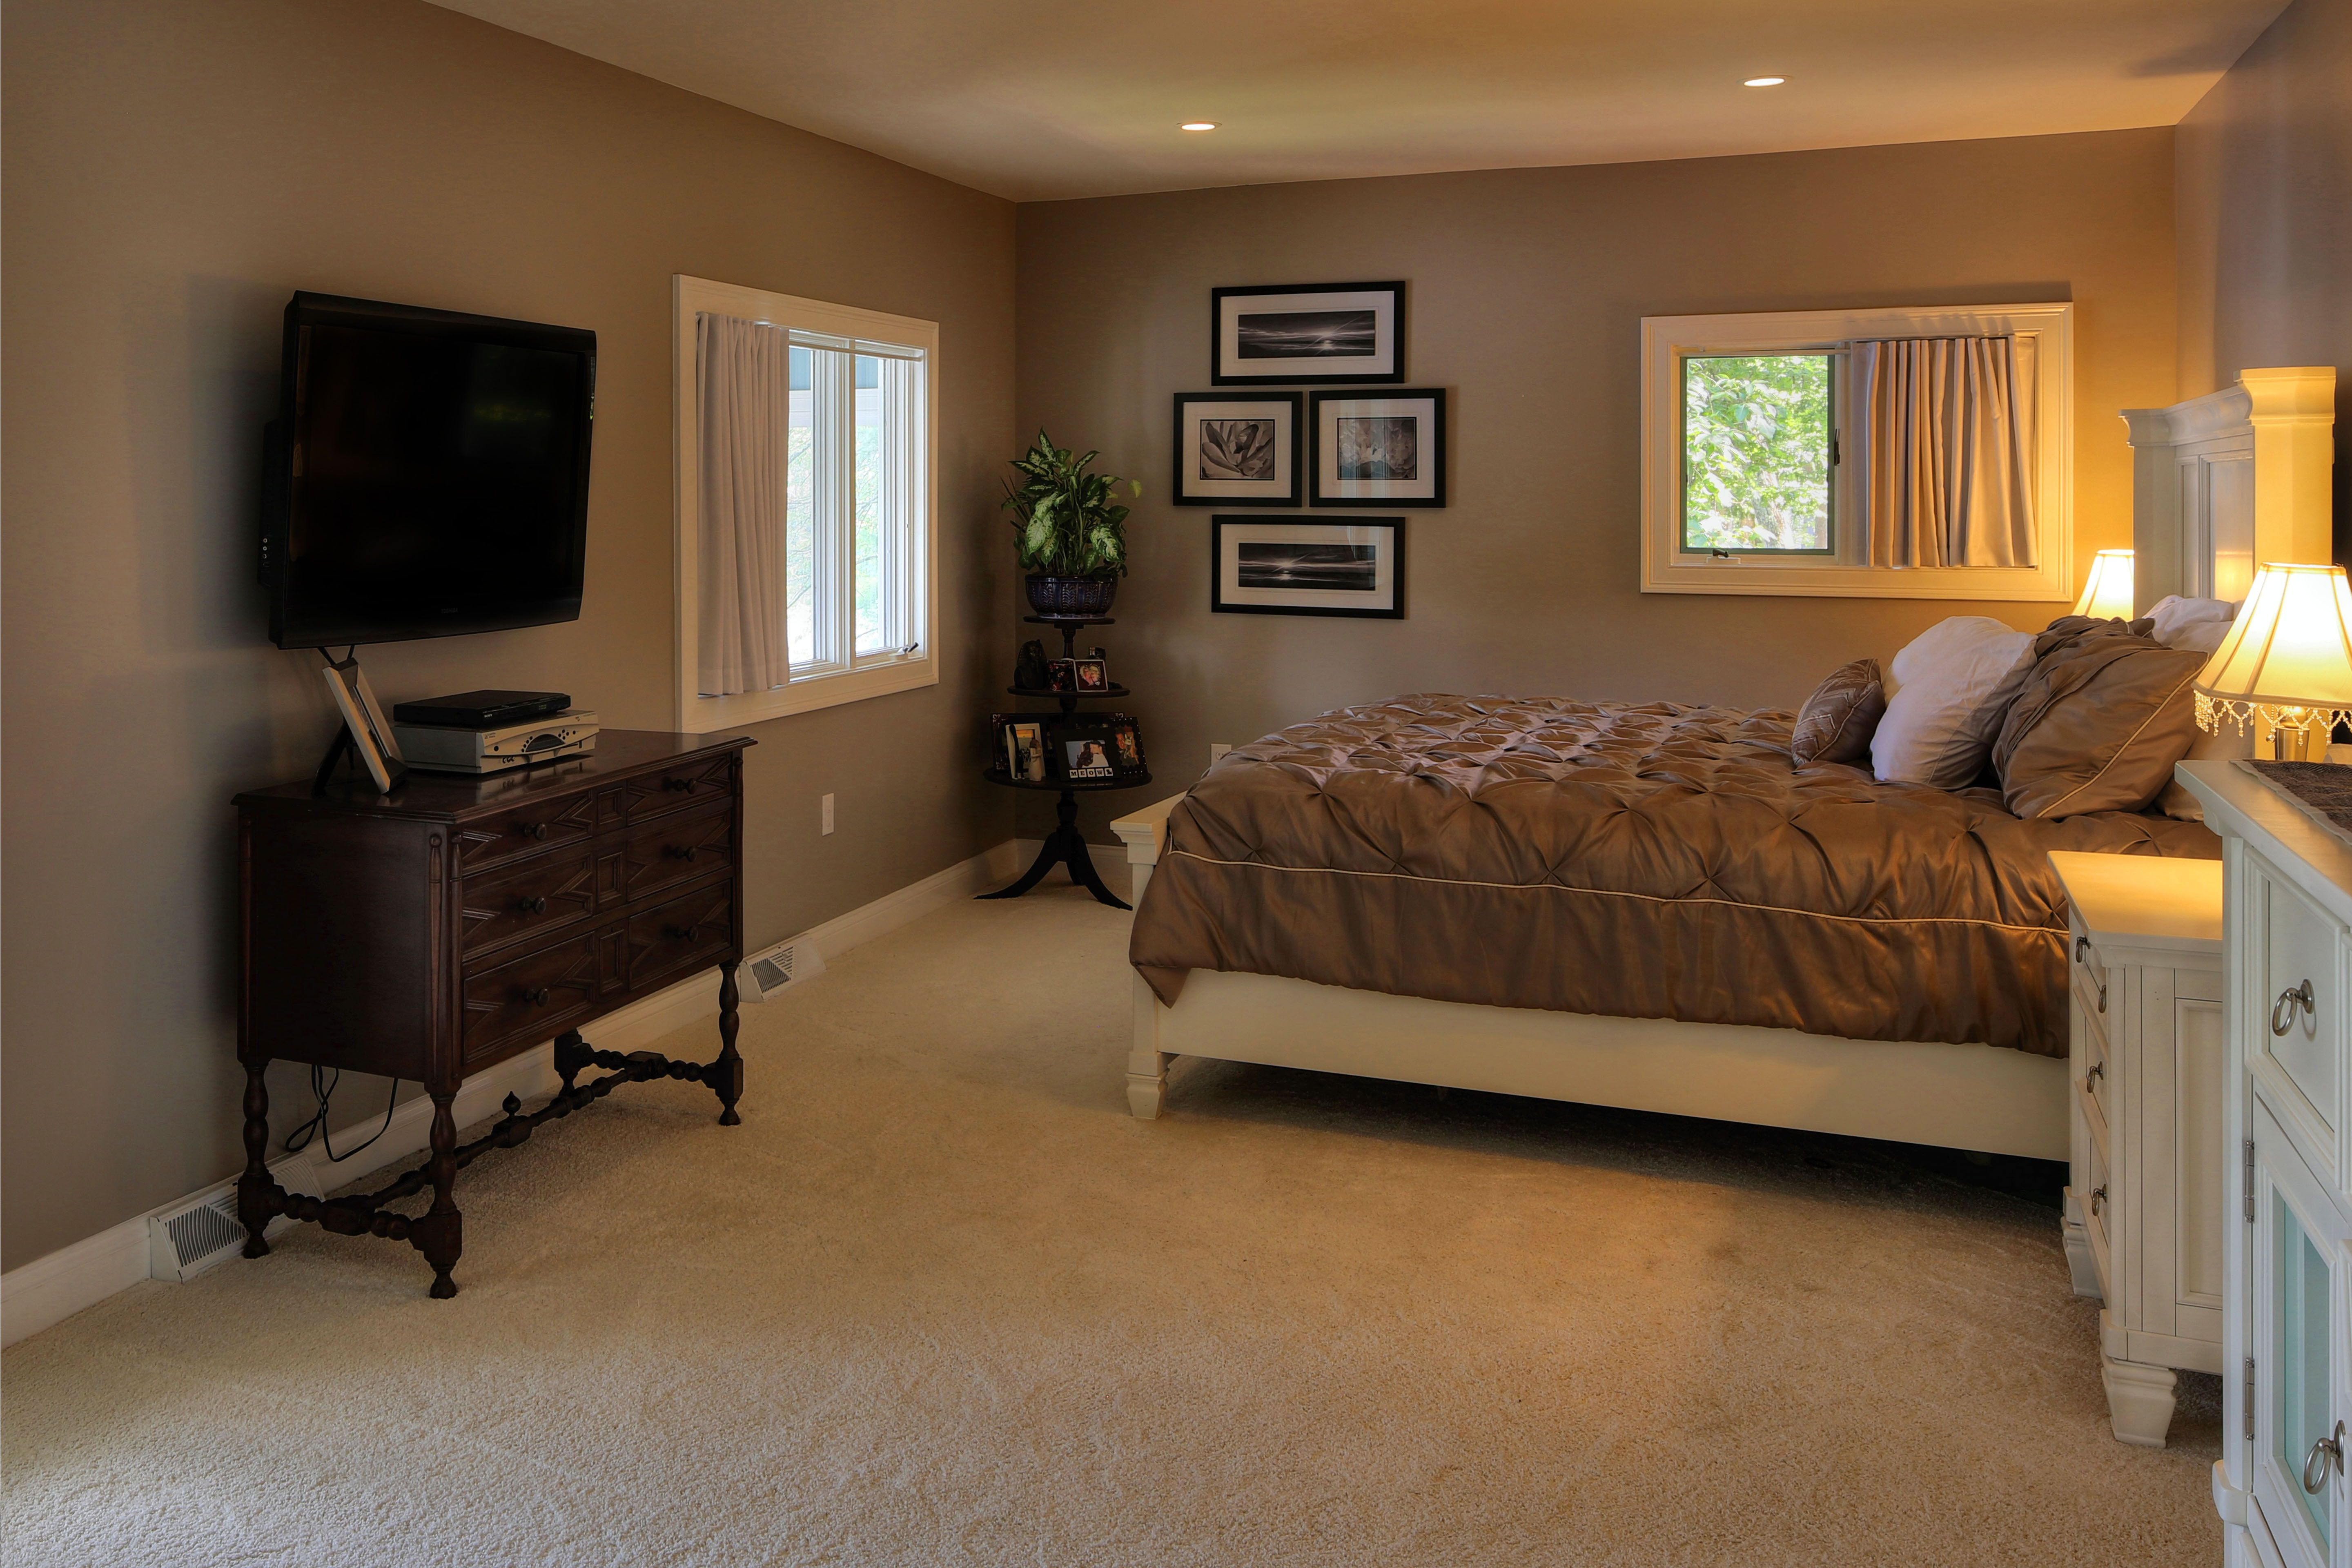 #Bedroom #Carpet #Carpeting #Floor #Floors #Flooring. Dixie Home, Bonterra  Collection, Cream Puff Color. Known For Its Plush And Delightfully Textured  ...